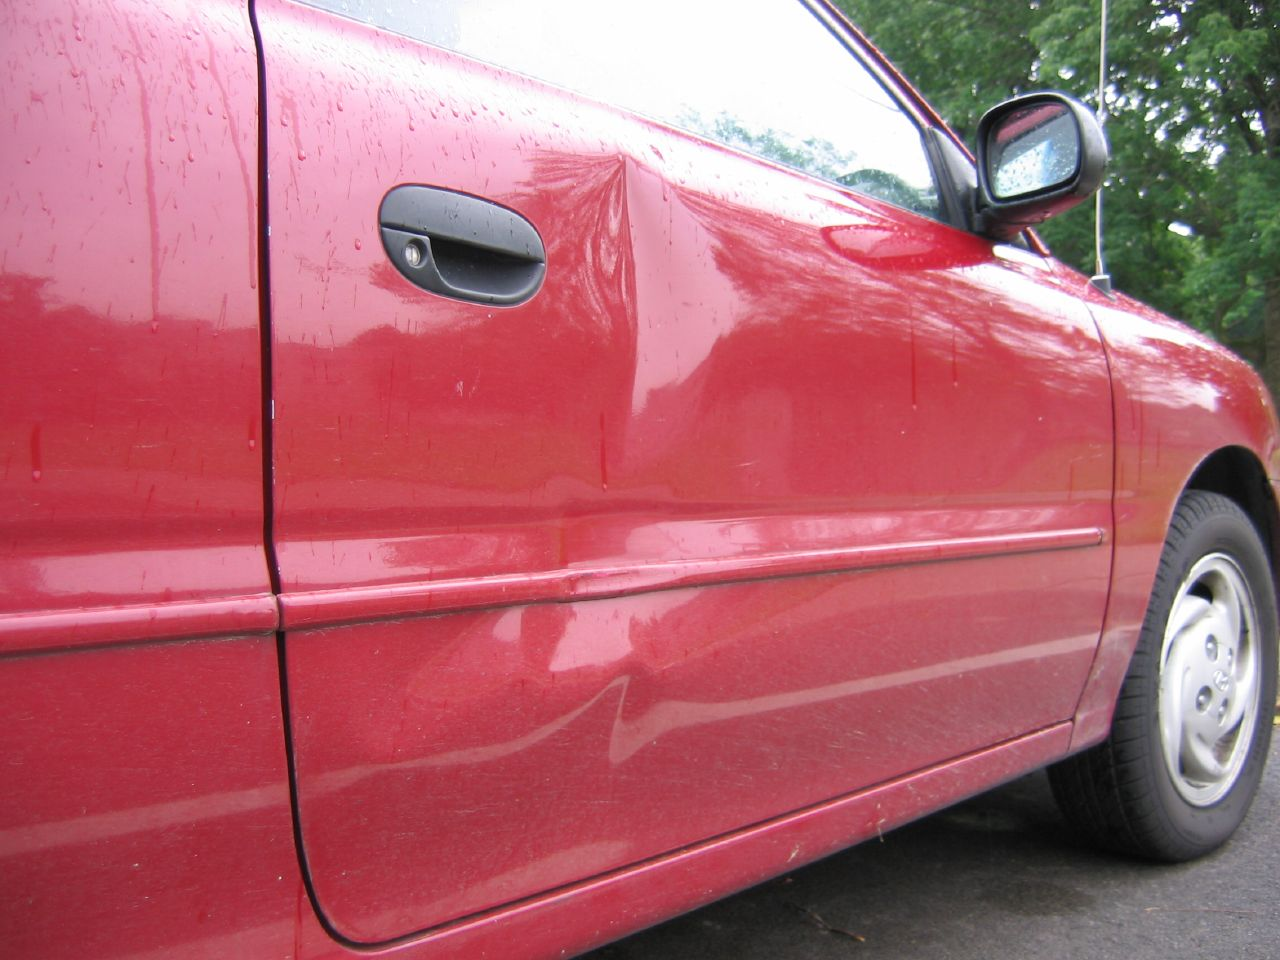 shocking video of dent in car